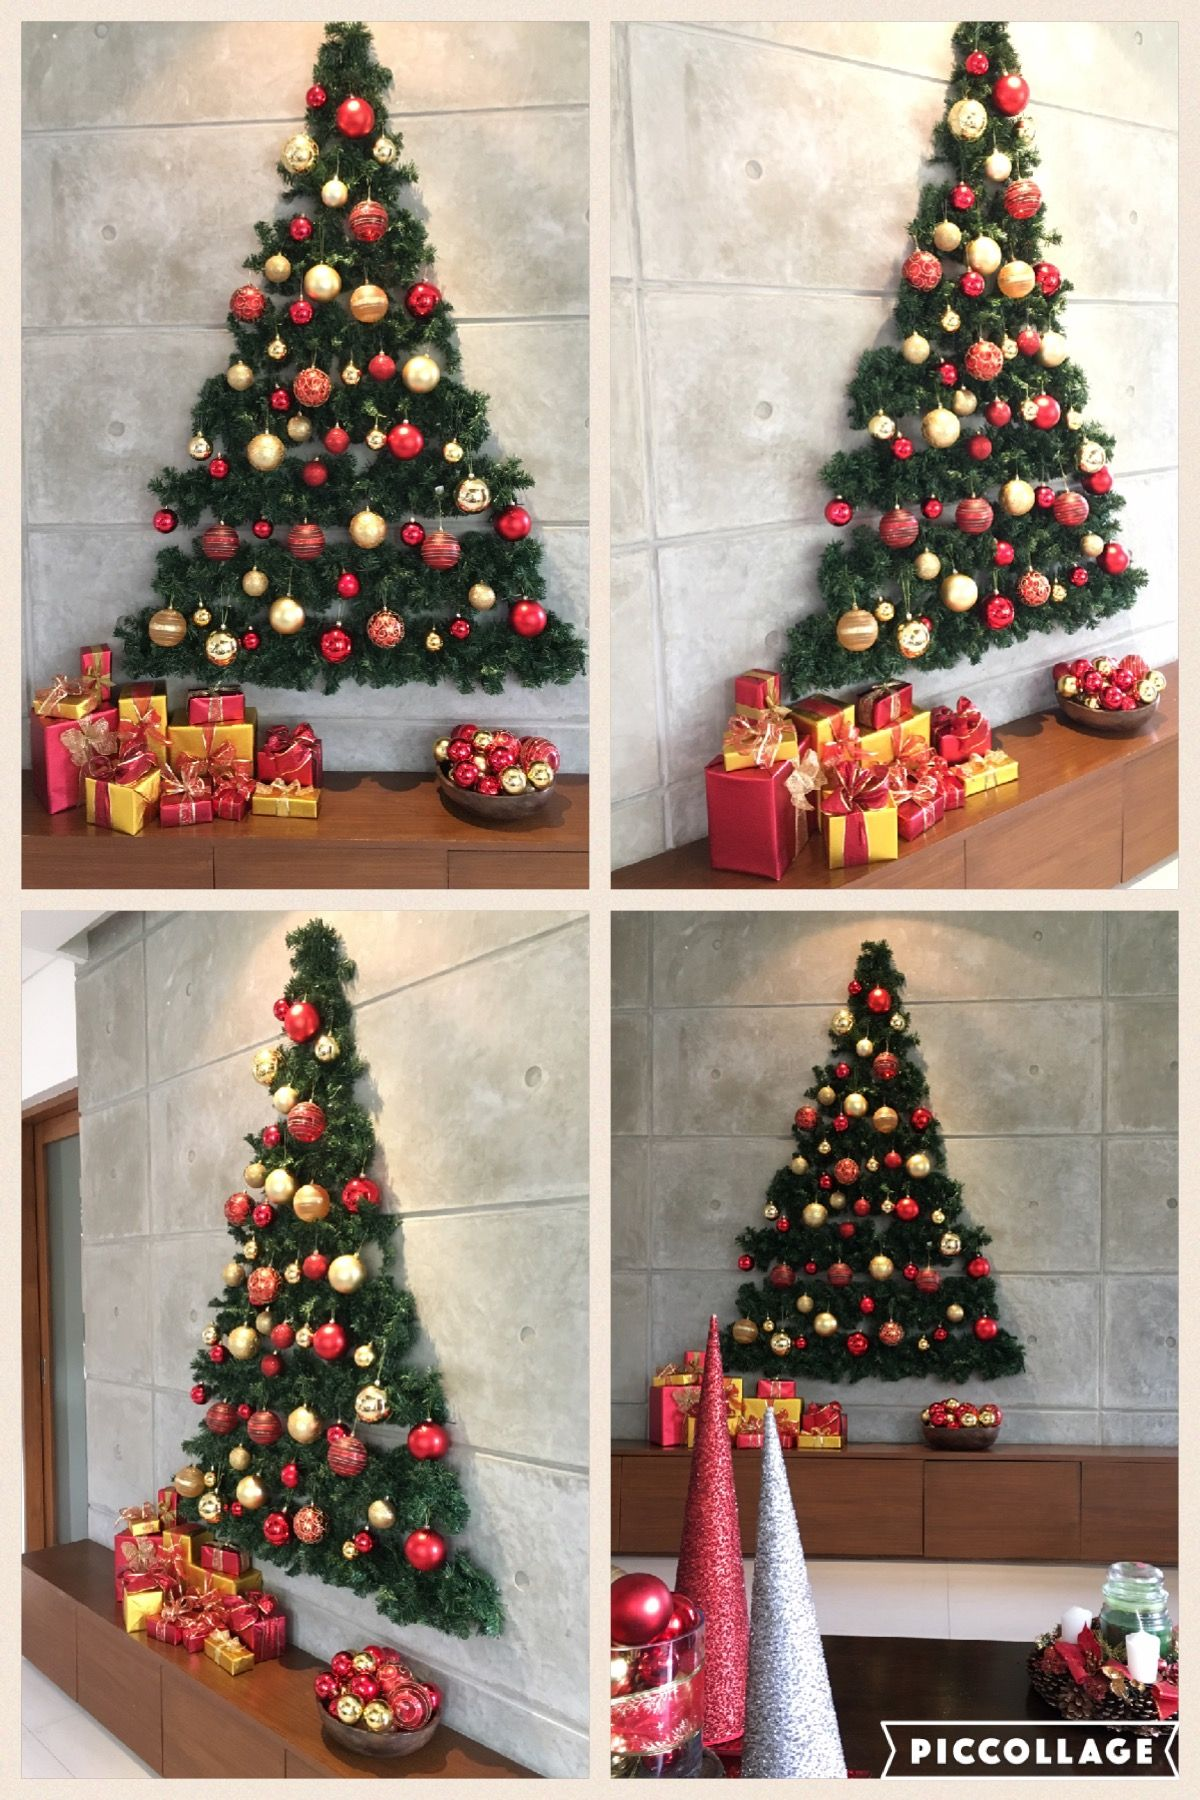 Flat Wall Christmas Tree Christmas Decorations Cheap Unique Christmas Trees Christmas Decor Diy